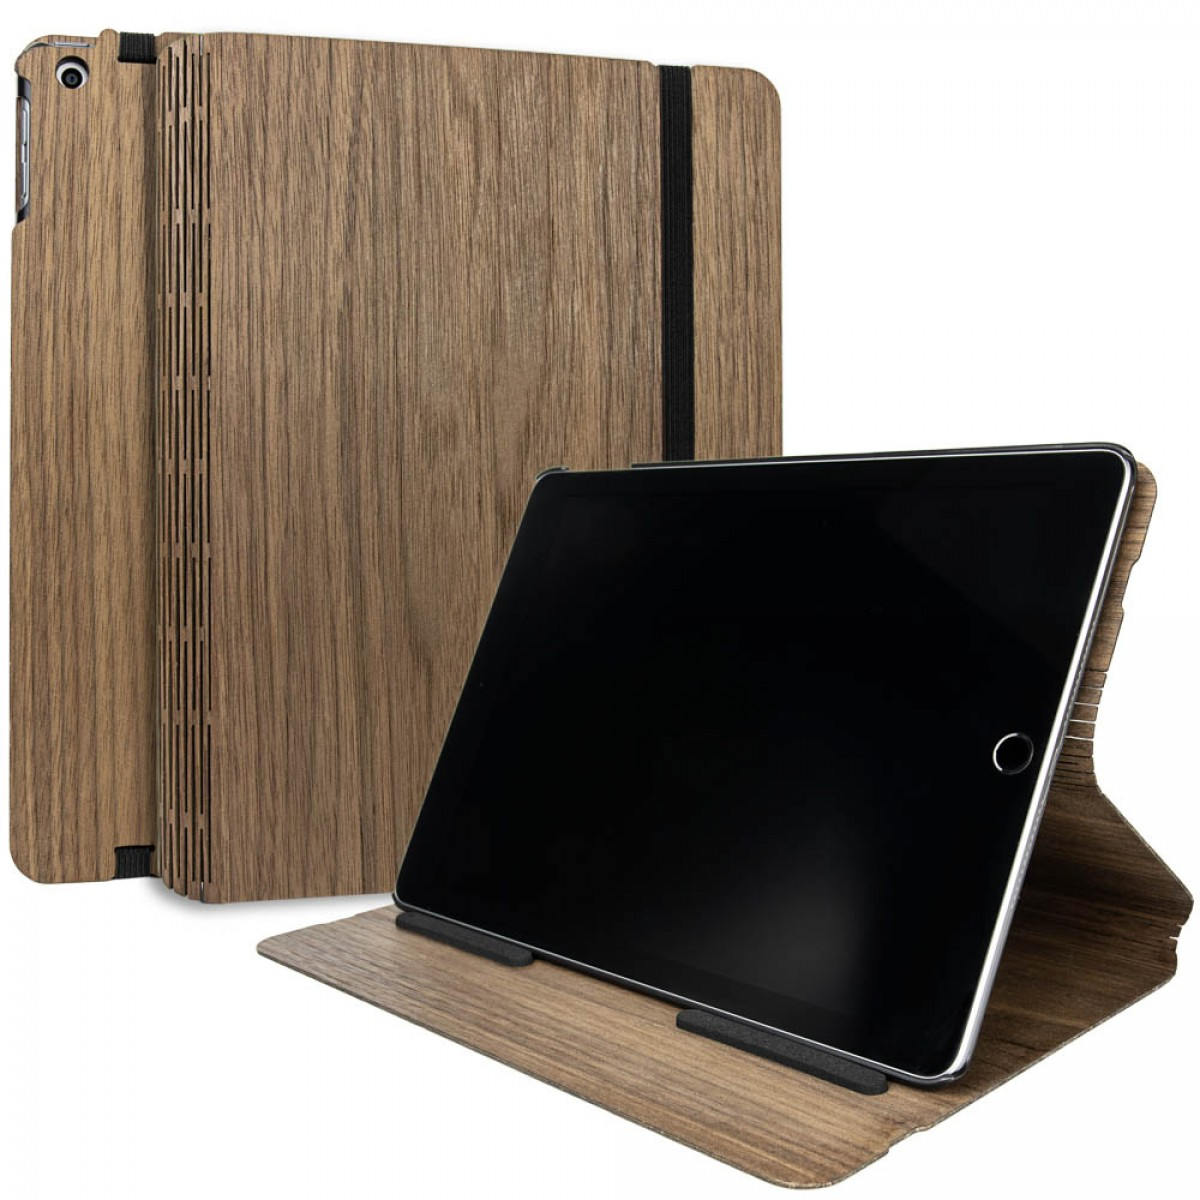 JUNGHOLZ Design WoodCase, Tabletcase, Walnuss, iPad 5. & 6. Generation